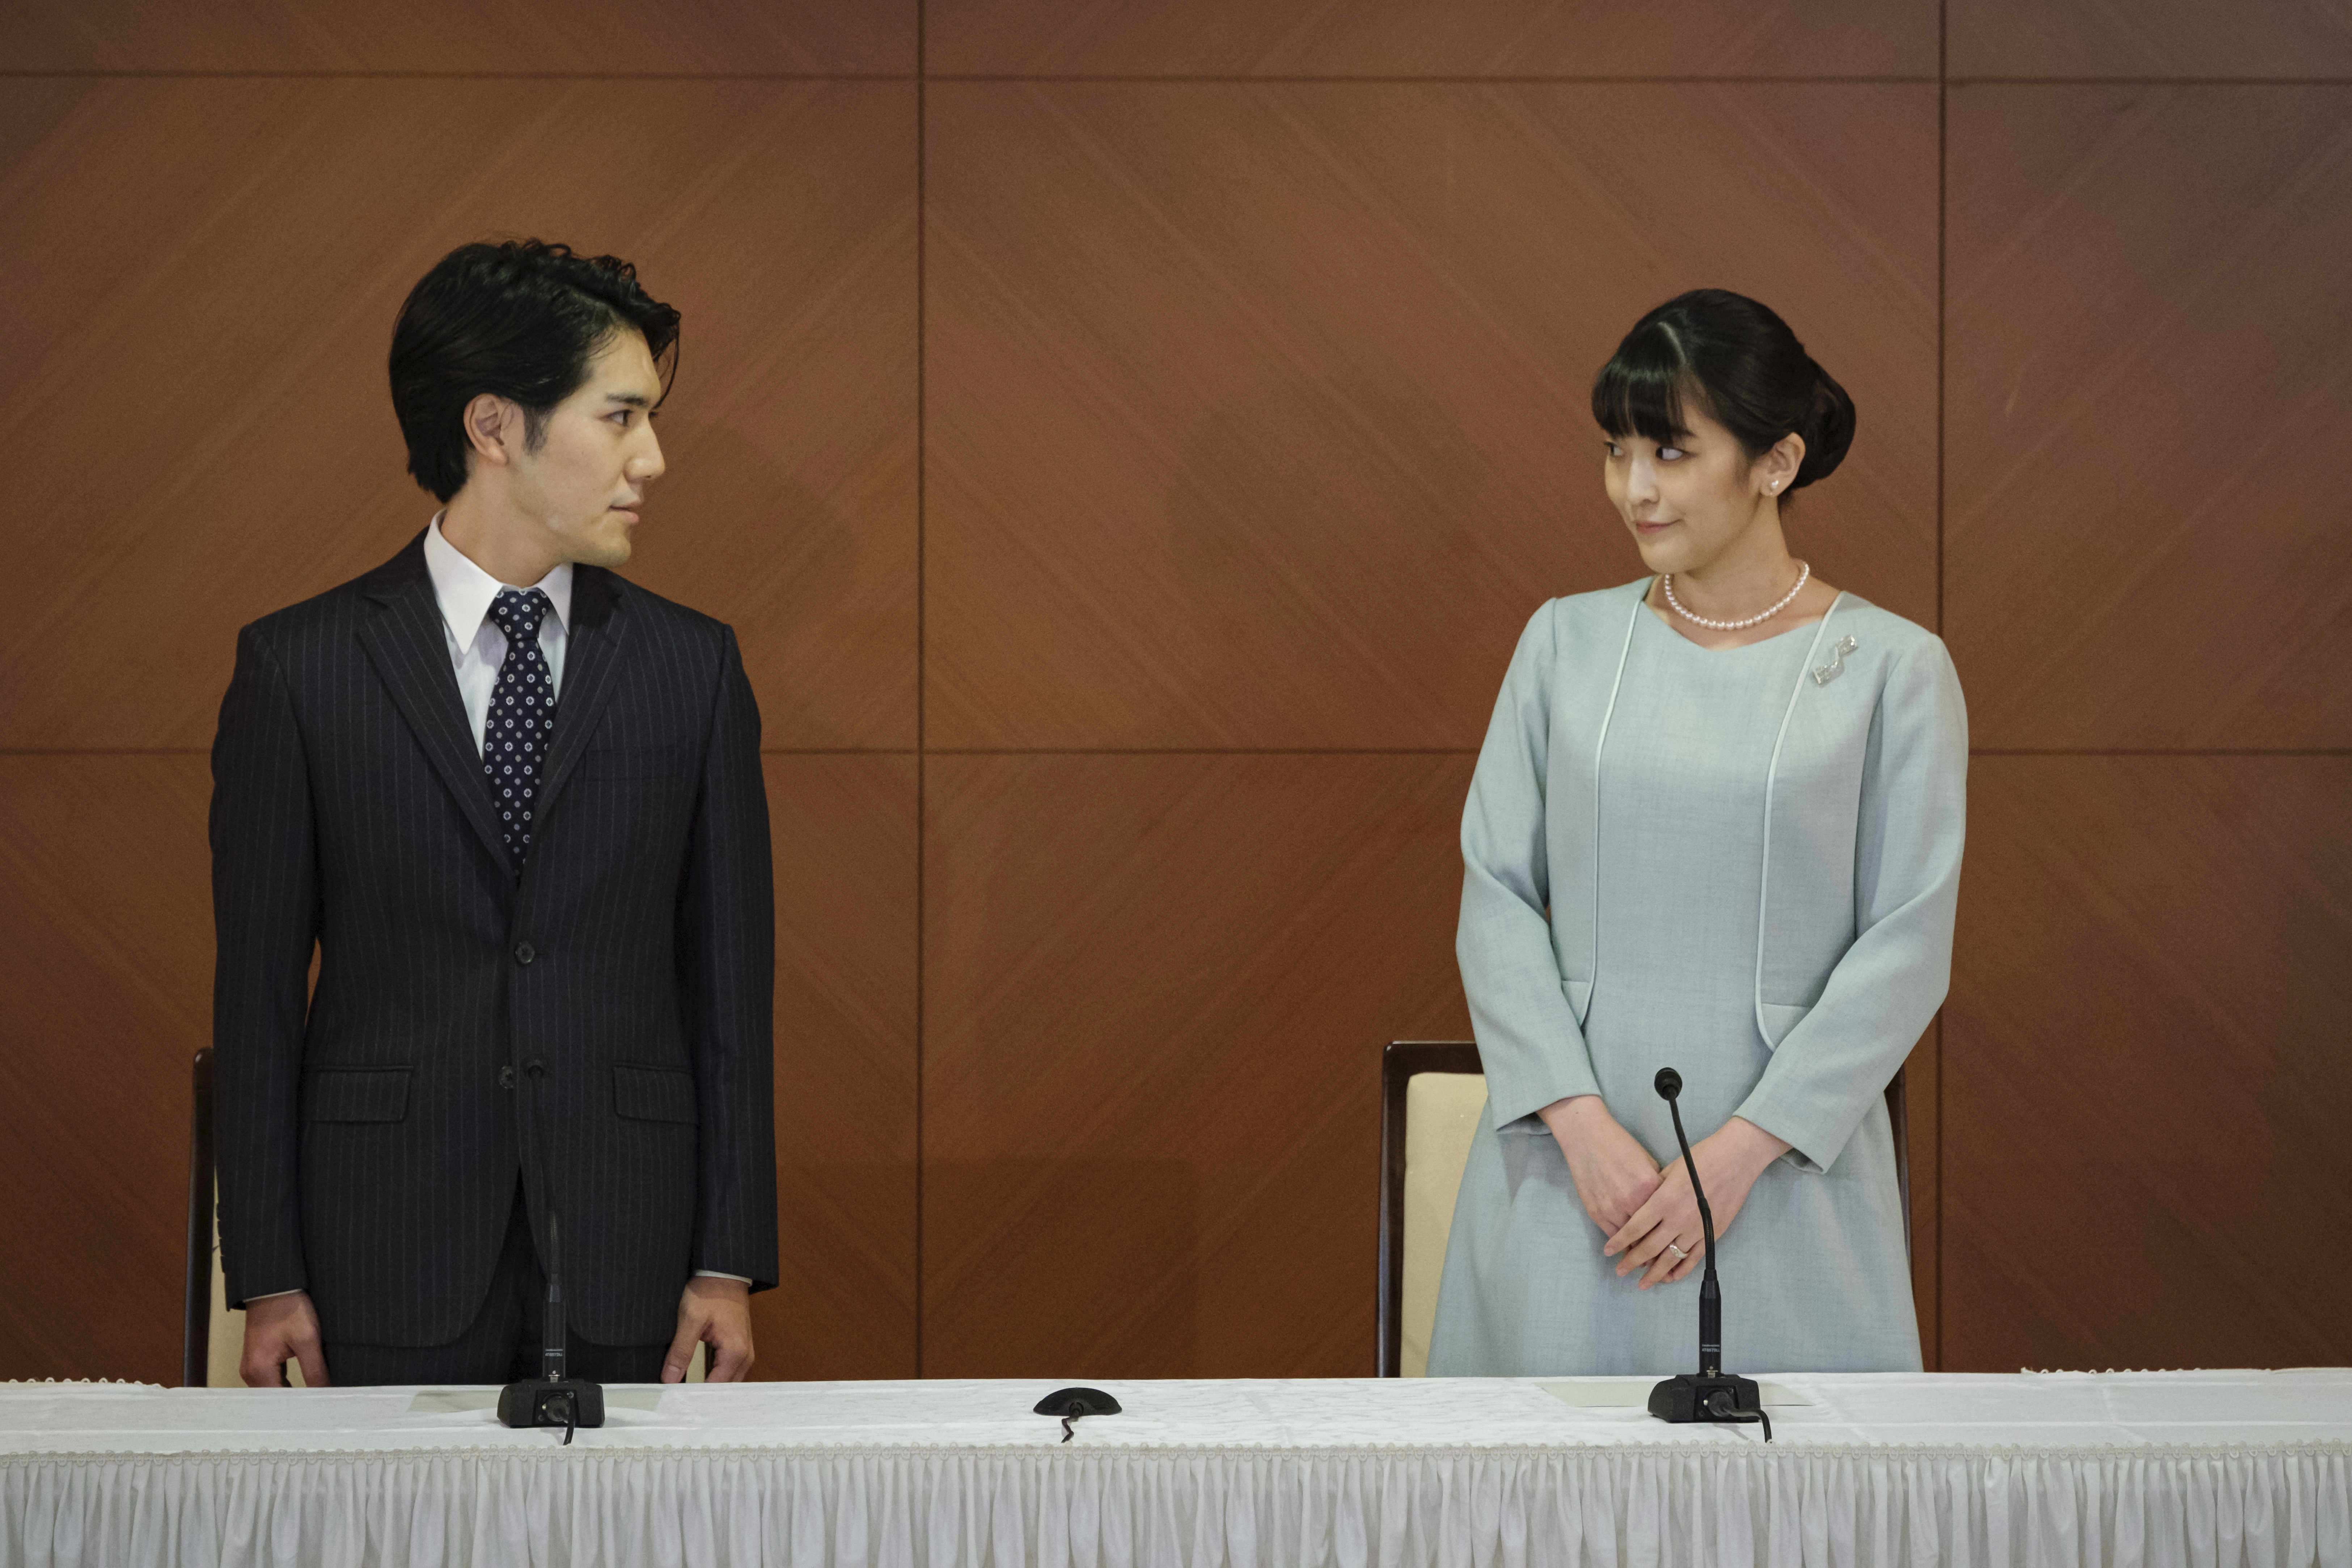 Japan's former Princess Mako, with her husband Kei Komuro, pose during a press conference to announce their marriage.